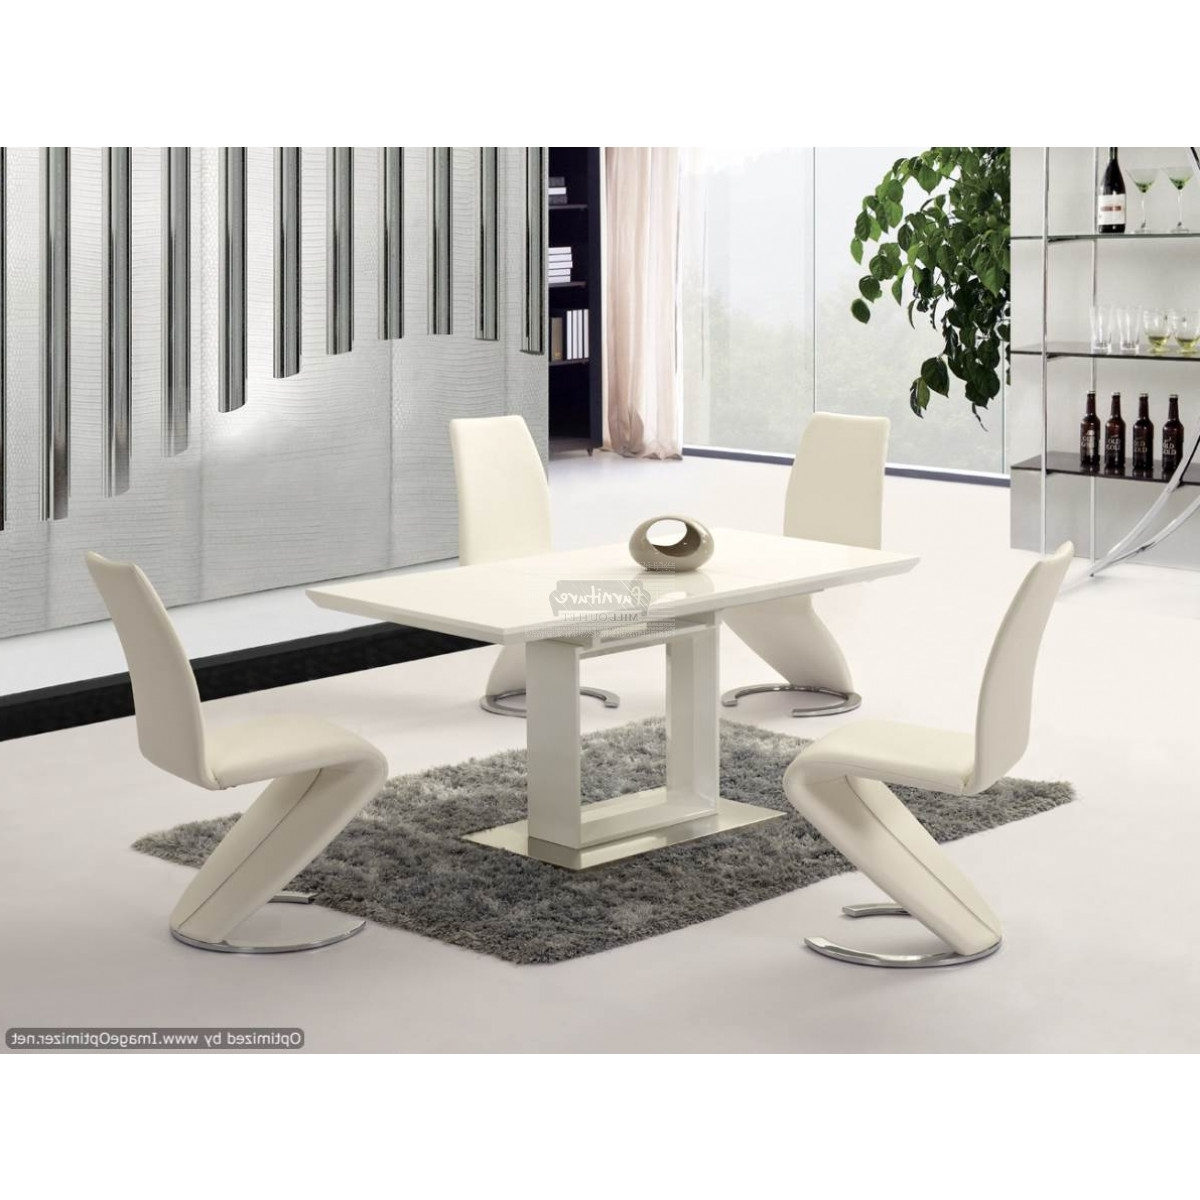 High Gloss White Extending Dining Tables For Recent Space White High Gloss Extending Dining Table – 120Cm To 160Cm (View 5 of 25)